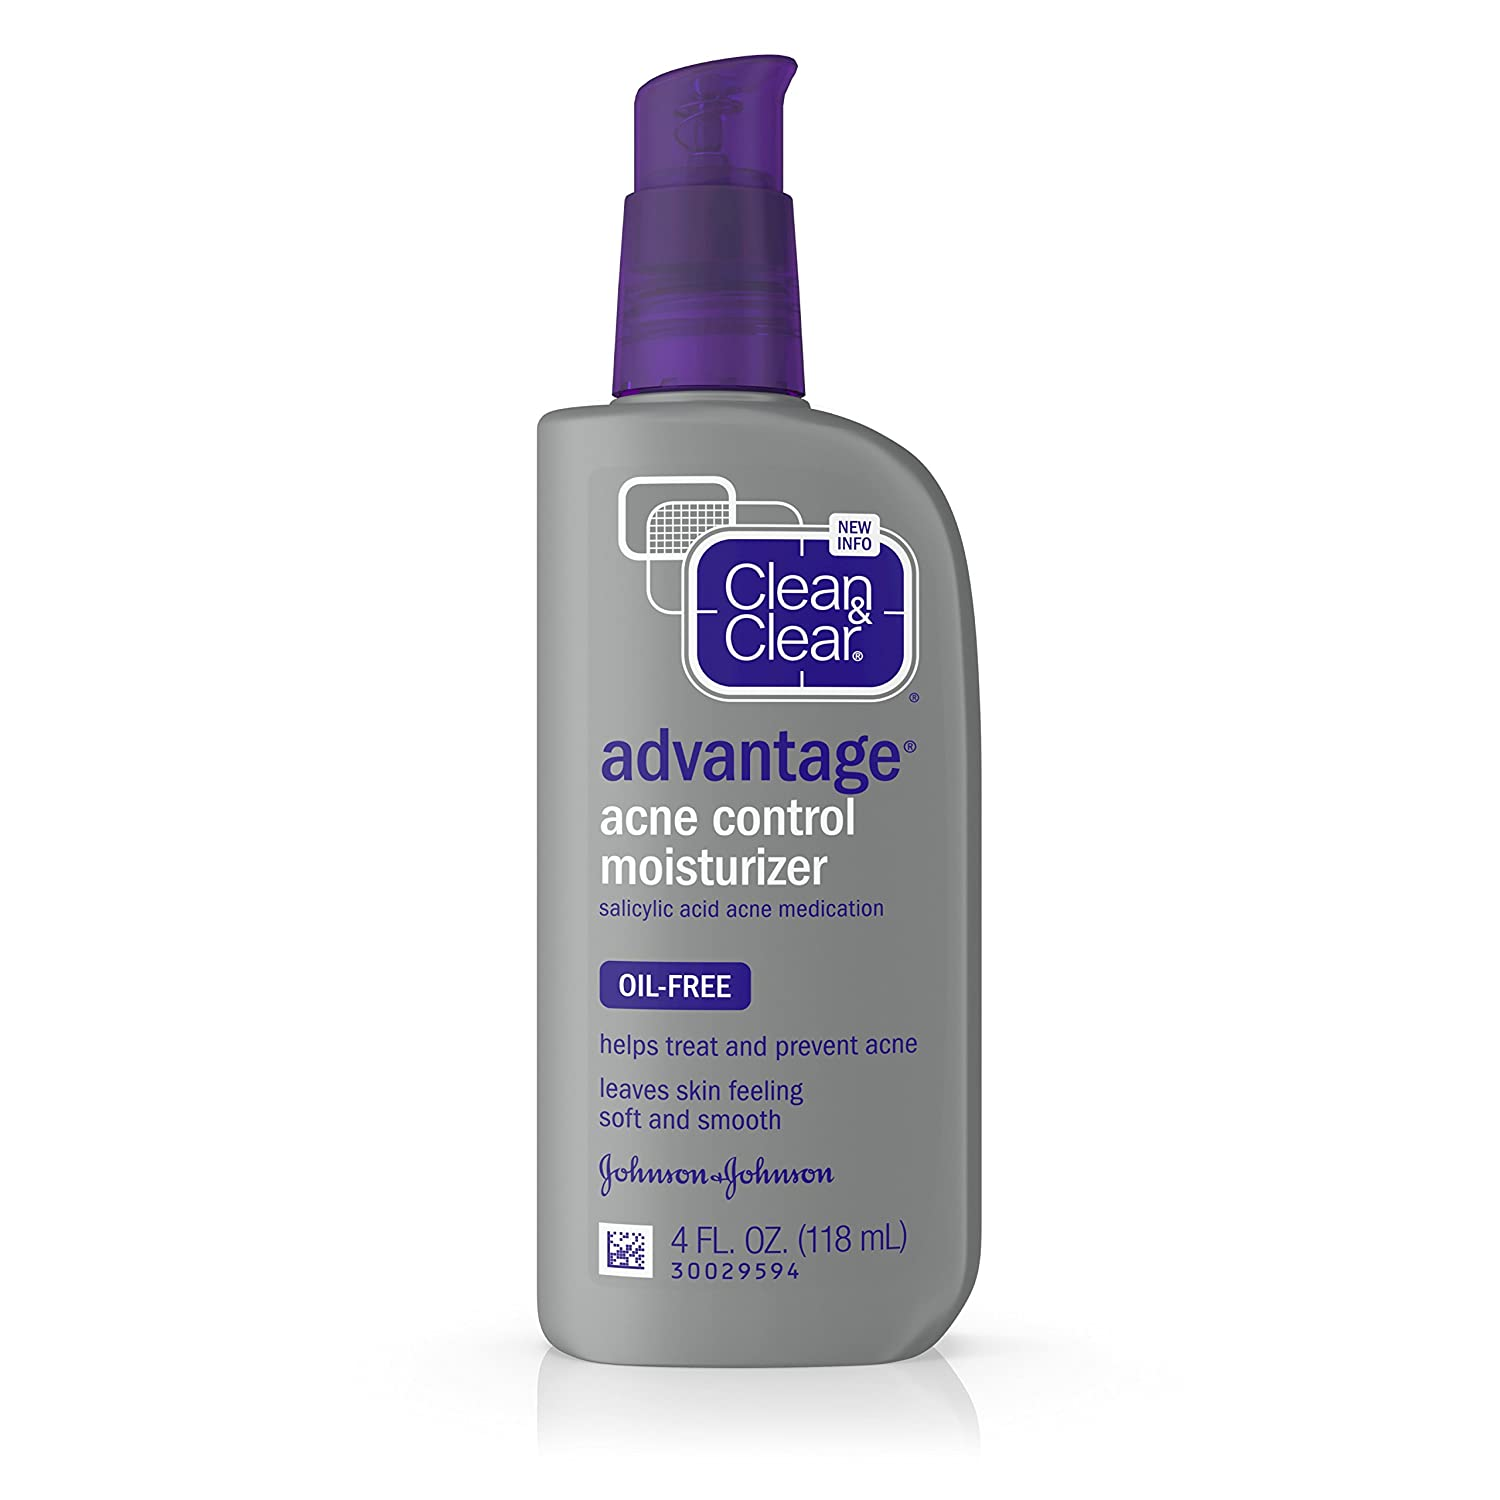 Clean & Clear Advantage Acne Control Face Moisturizer with Salicylic Acid Acne Medication